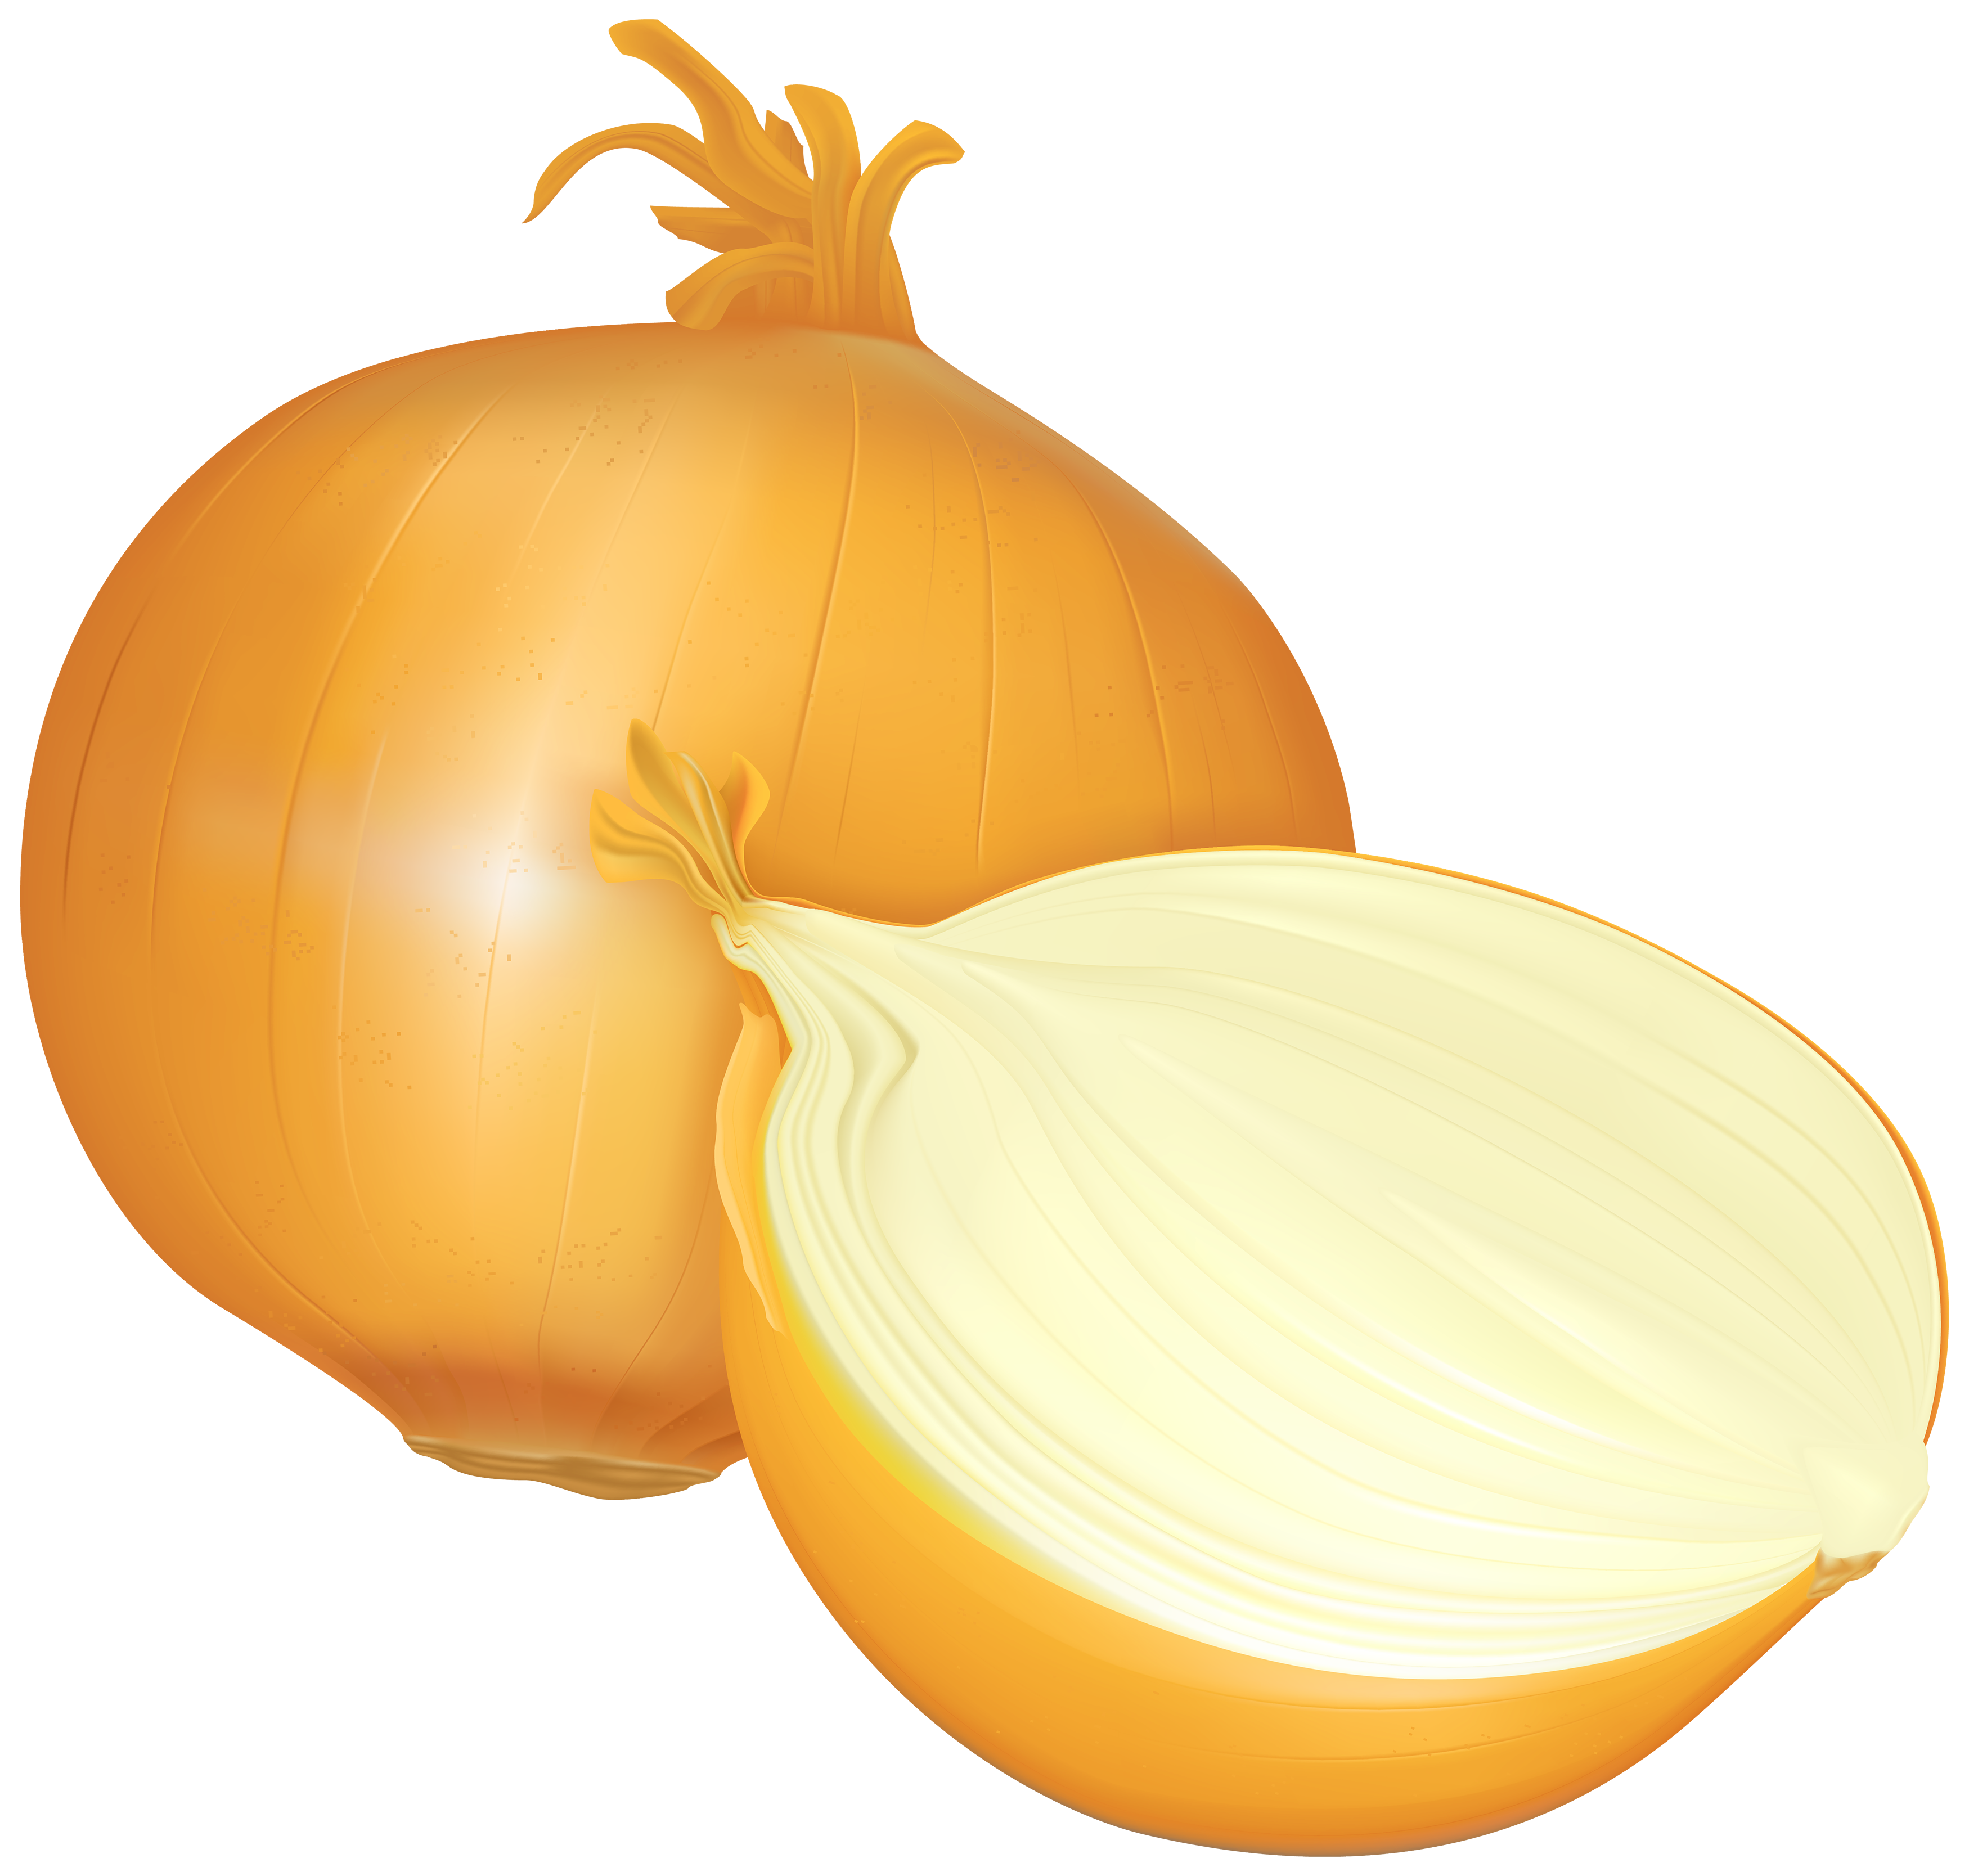 Onion clipart About All Clipart Onion clipground